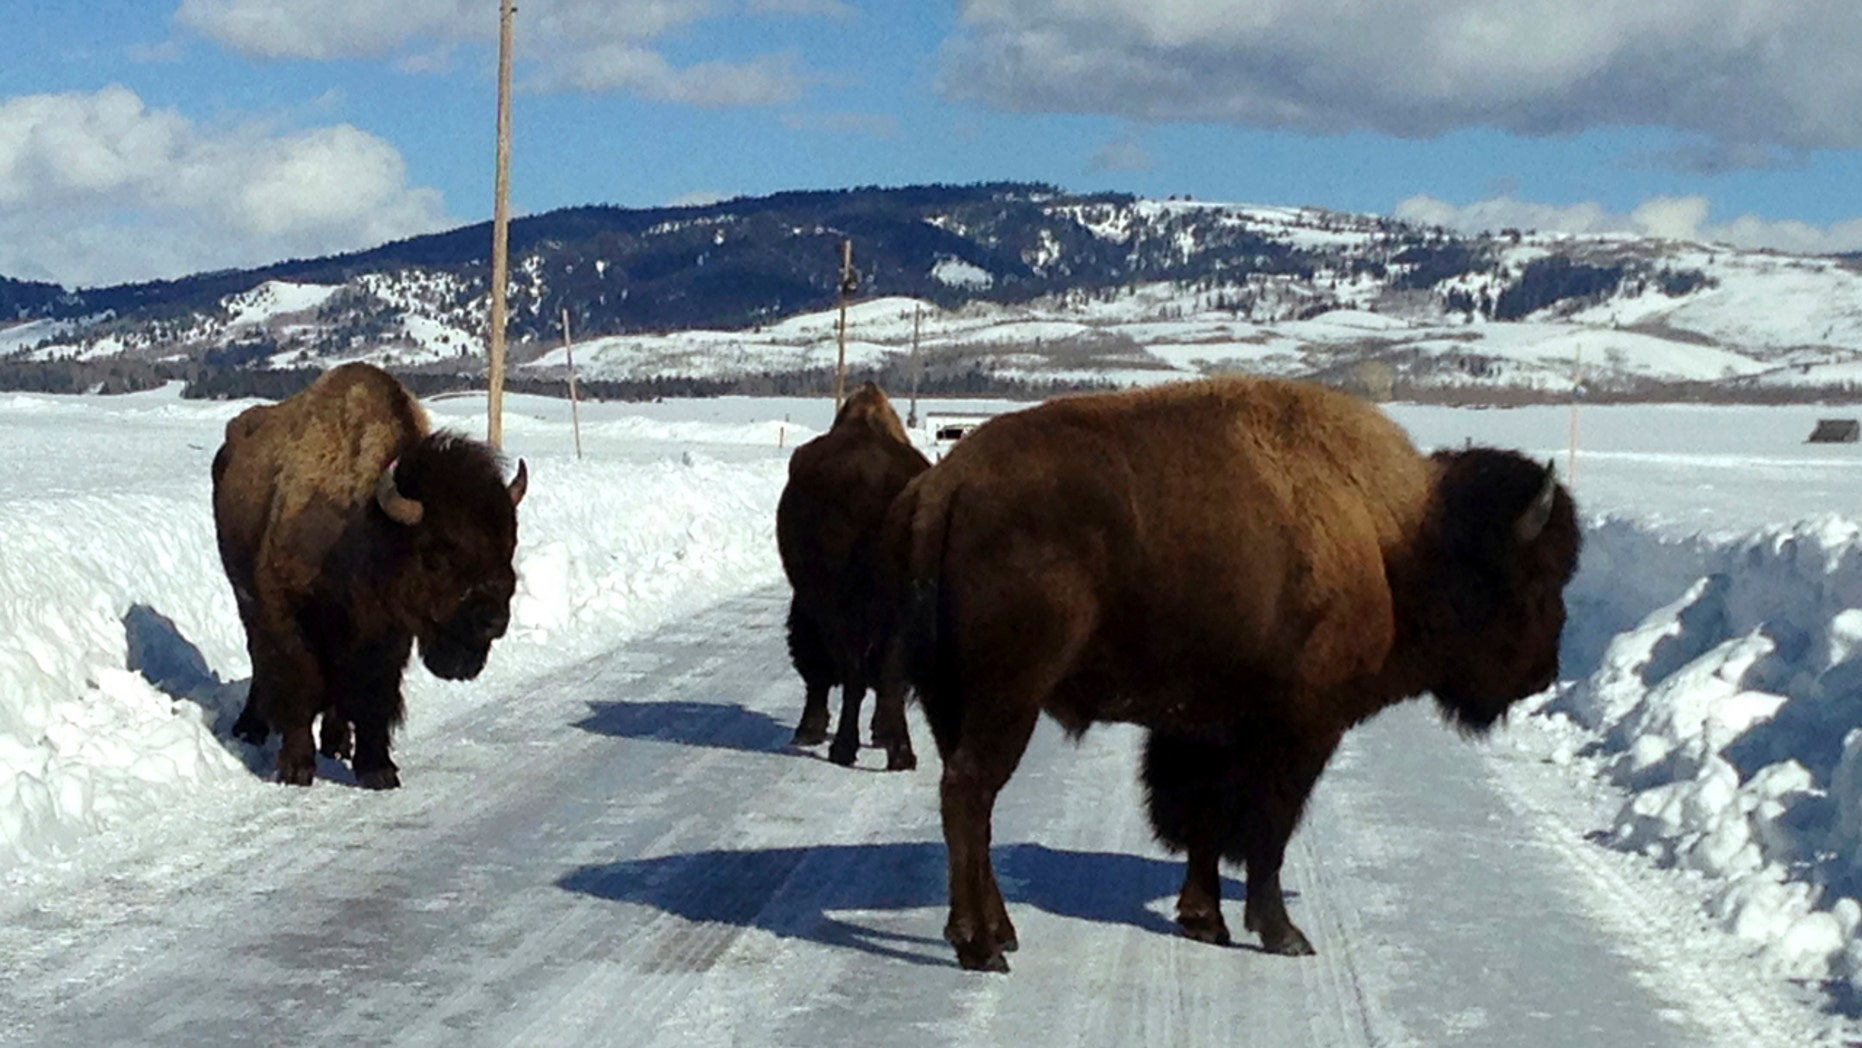 In this Feb. 4, 2017 photo provided by Grand Teton National Park, three bison linger on a plowed area of Antelope Flats Road, in Grand Teton National Park, Wyo.